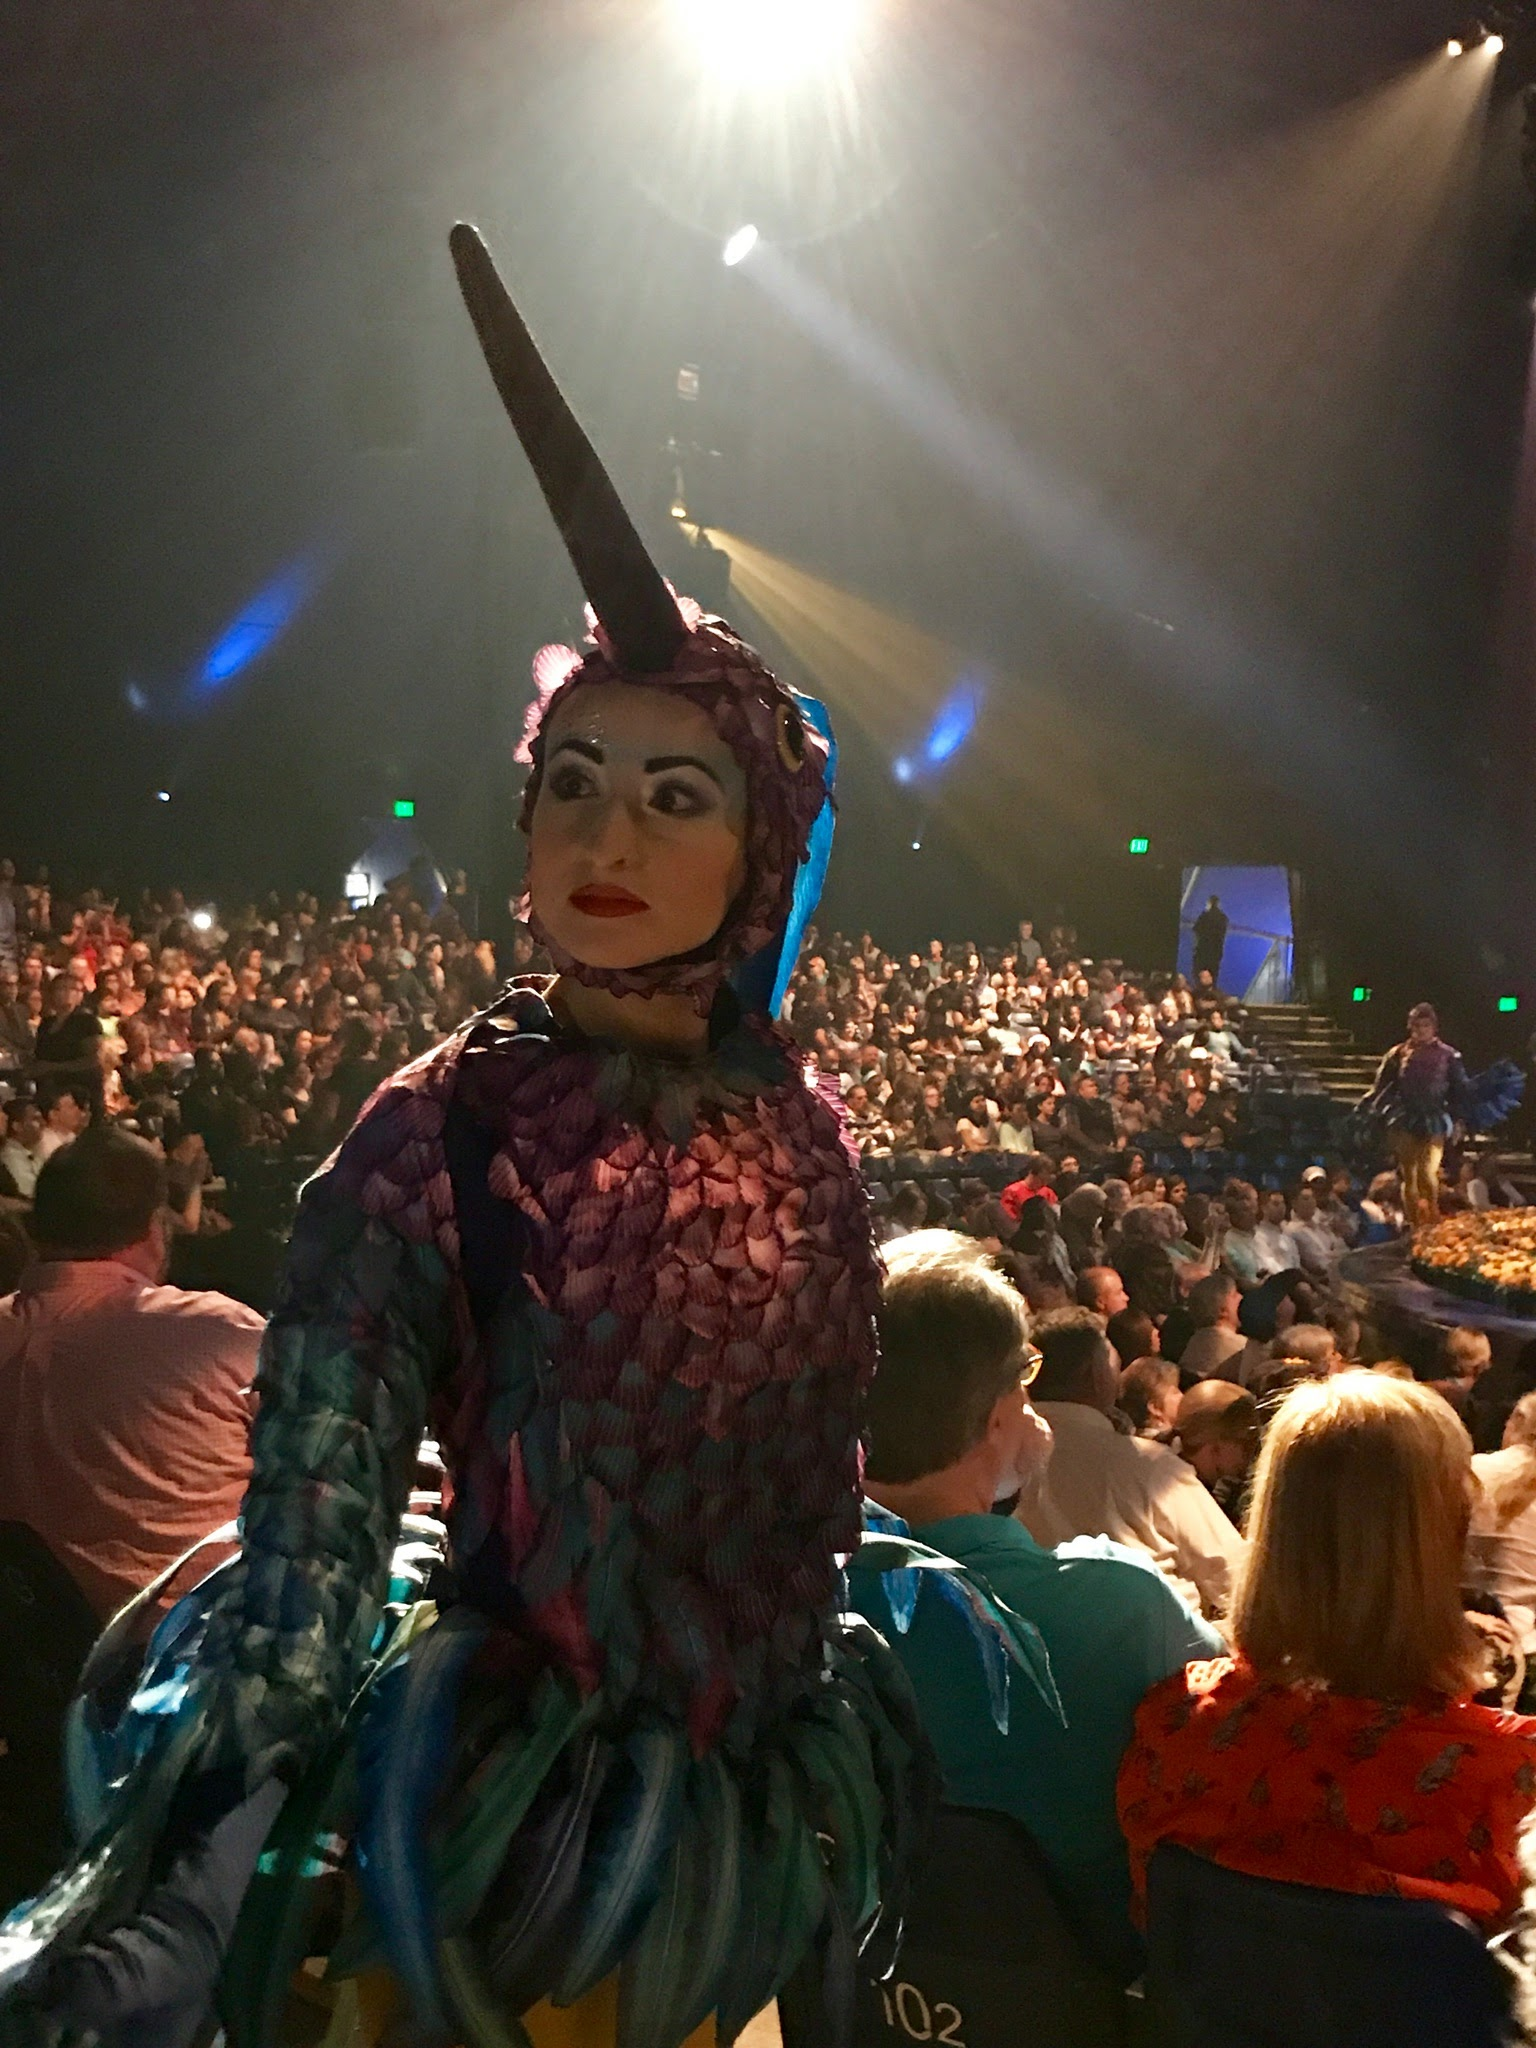 Oftne, the Cirque-du-Soleil LUZIA performers can be found wandering in the audience!